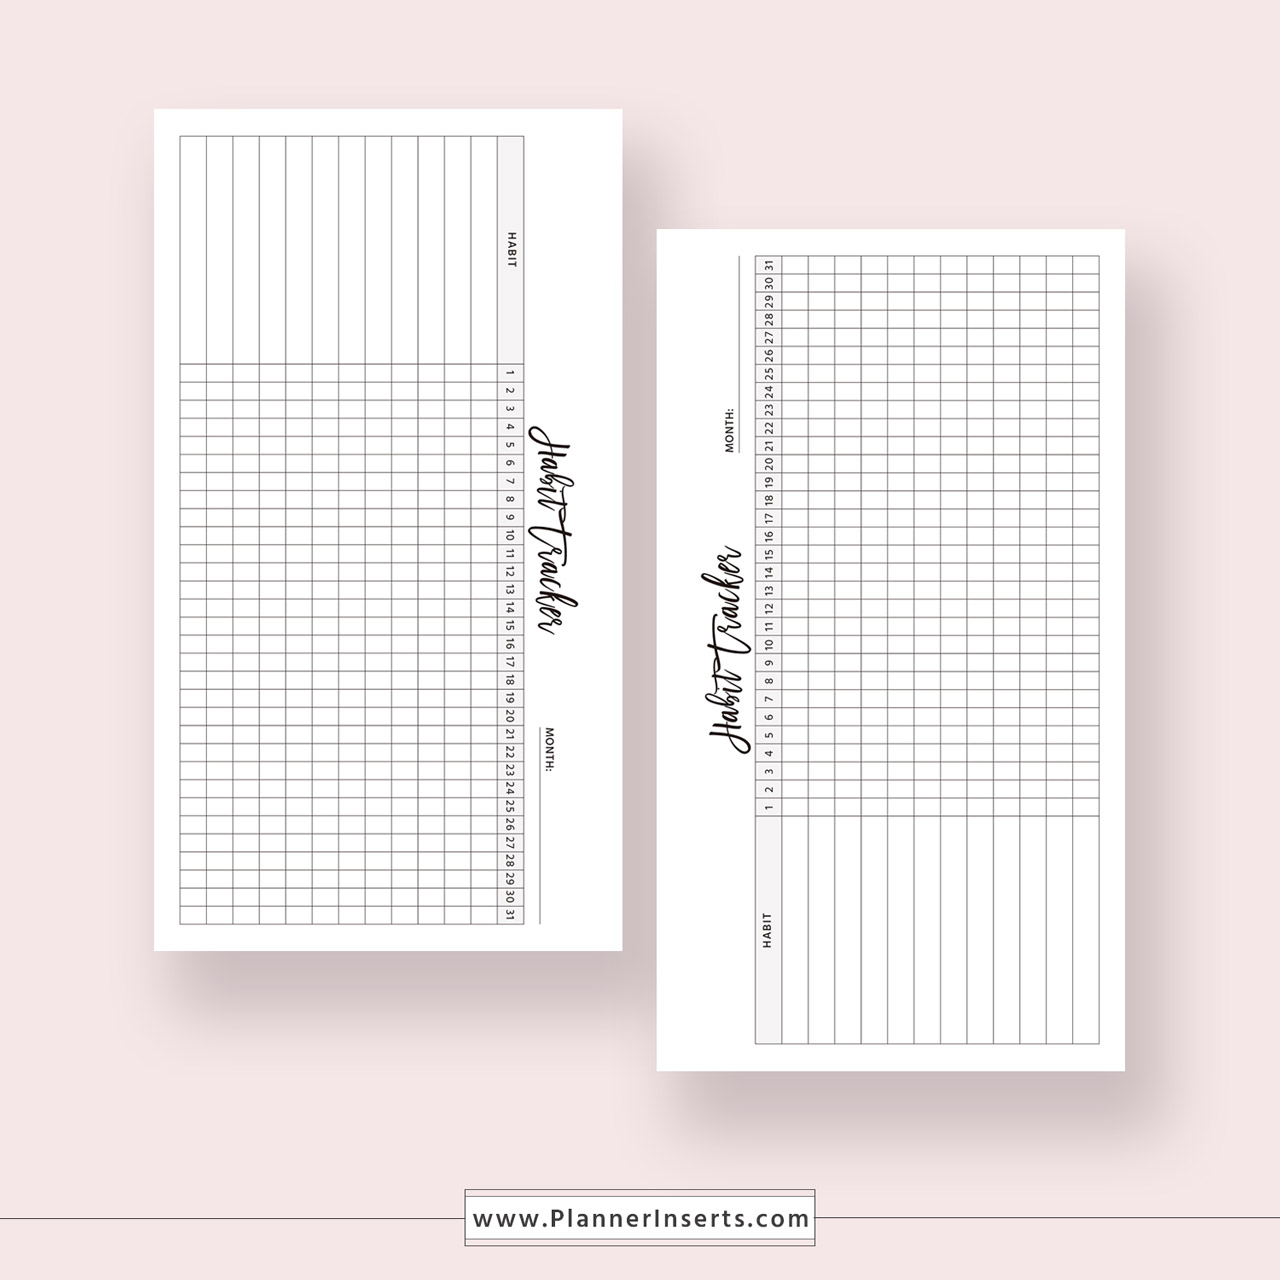 photograph about Habit Tracker Printable identify Month to month Practice Tracker for Limitless Fast Down load - Electronic Printable Planner Inserts within .PDF Layout - Particular person Dimension - 30 Working day Behavior, Routine Planner